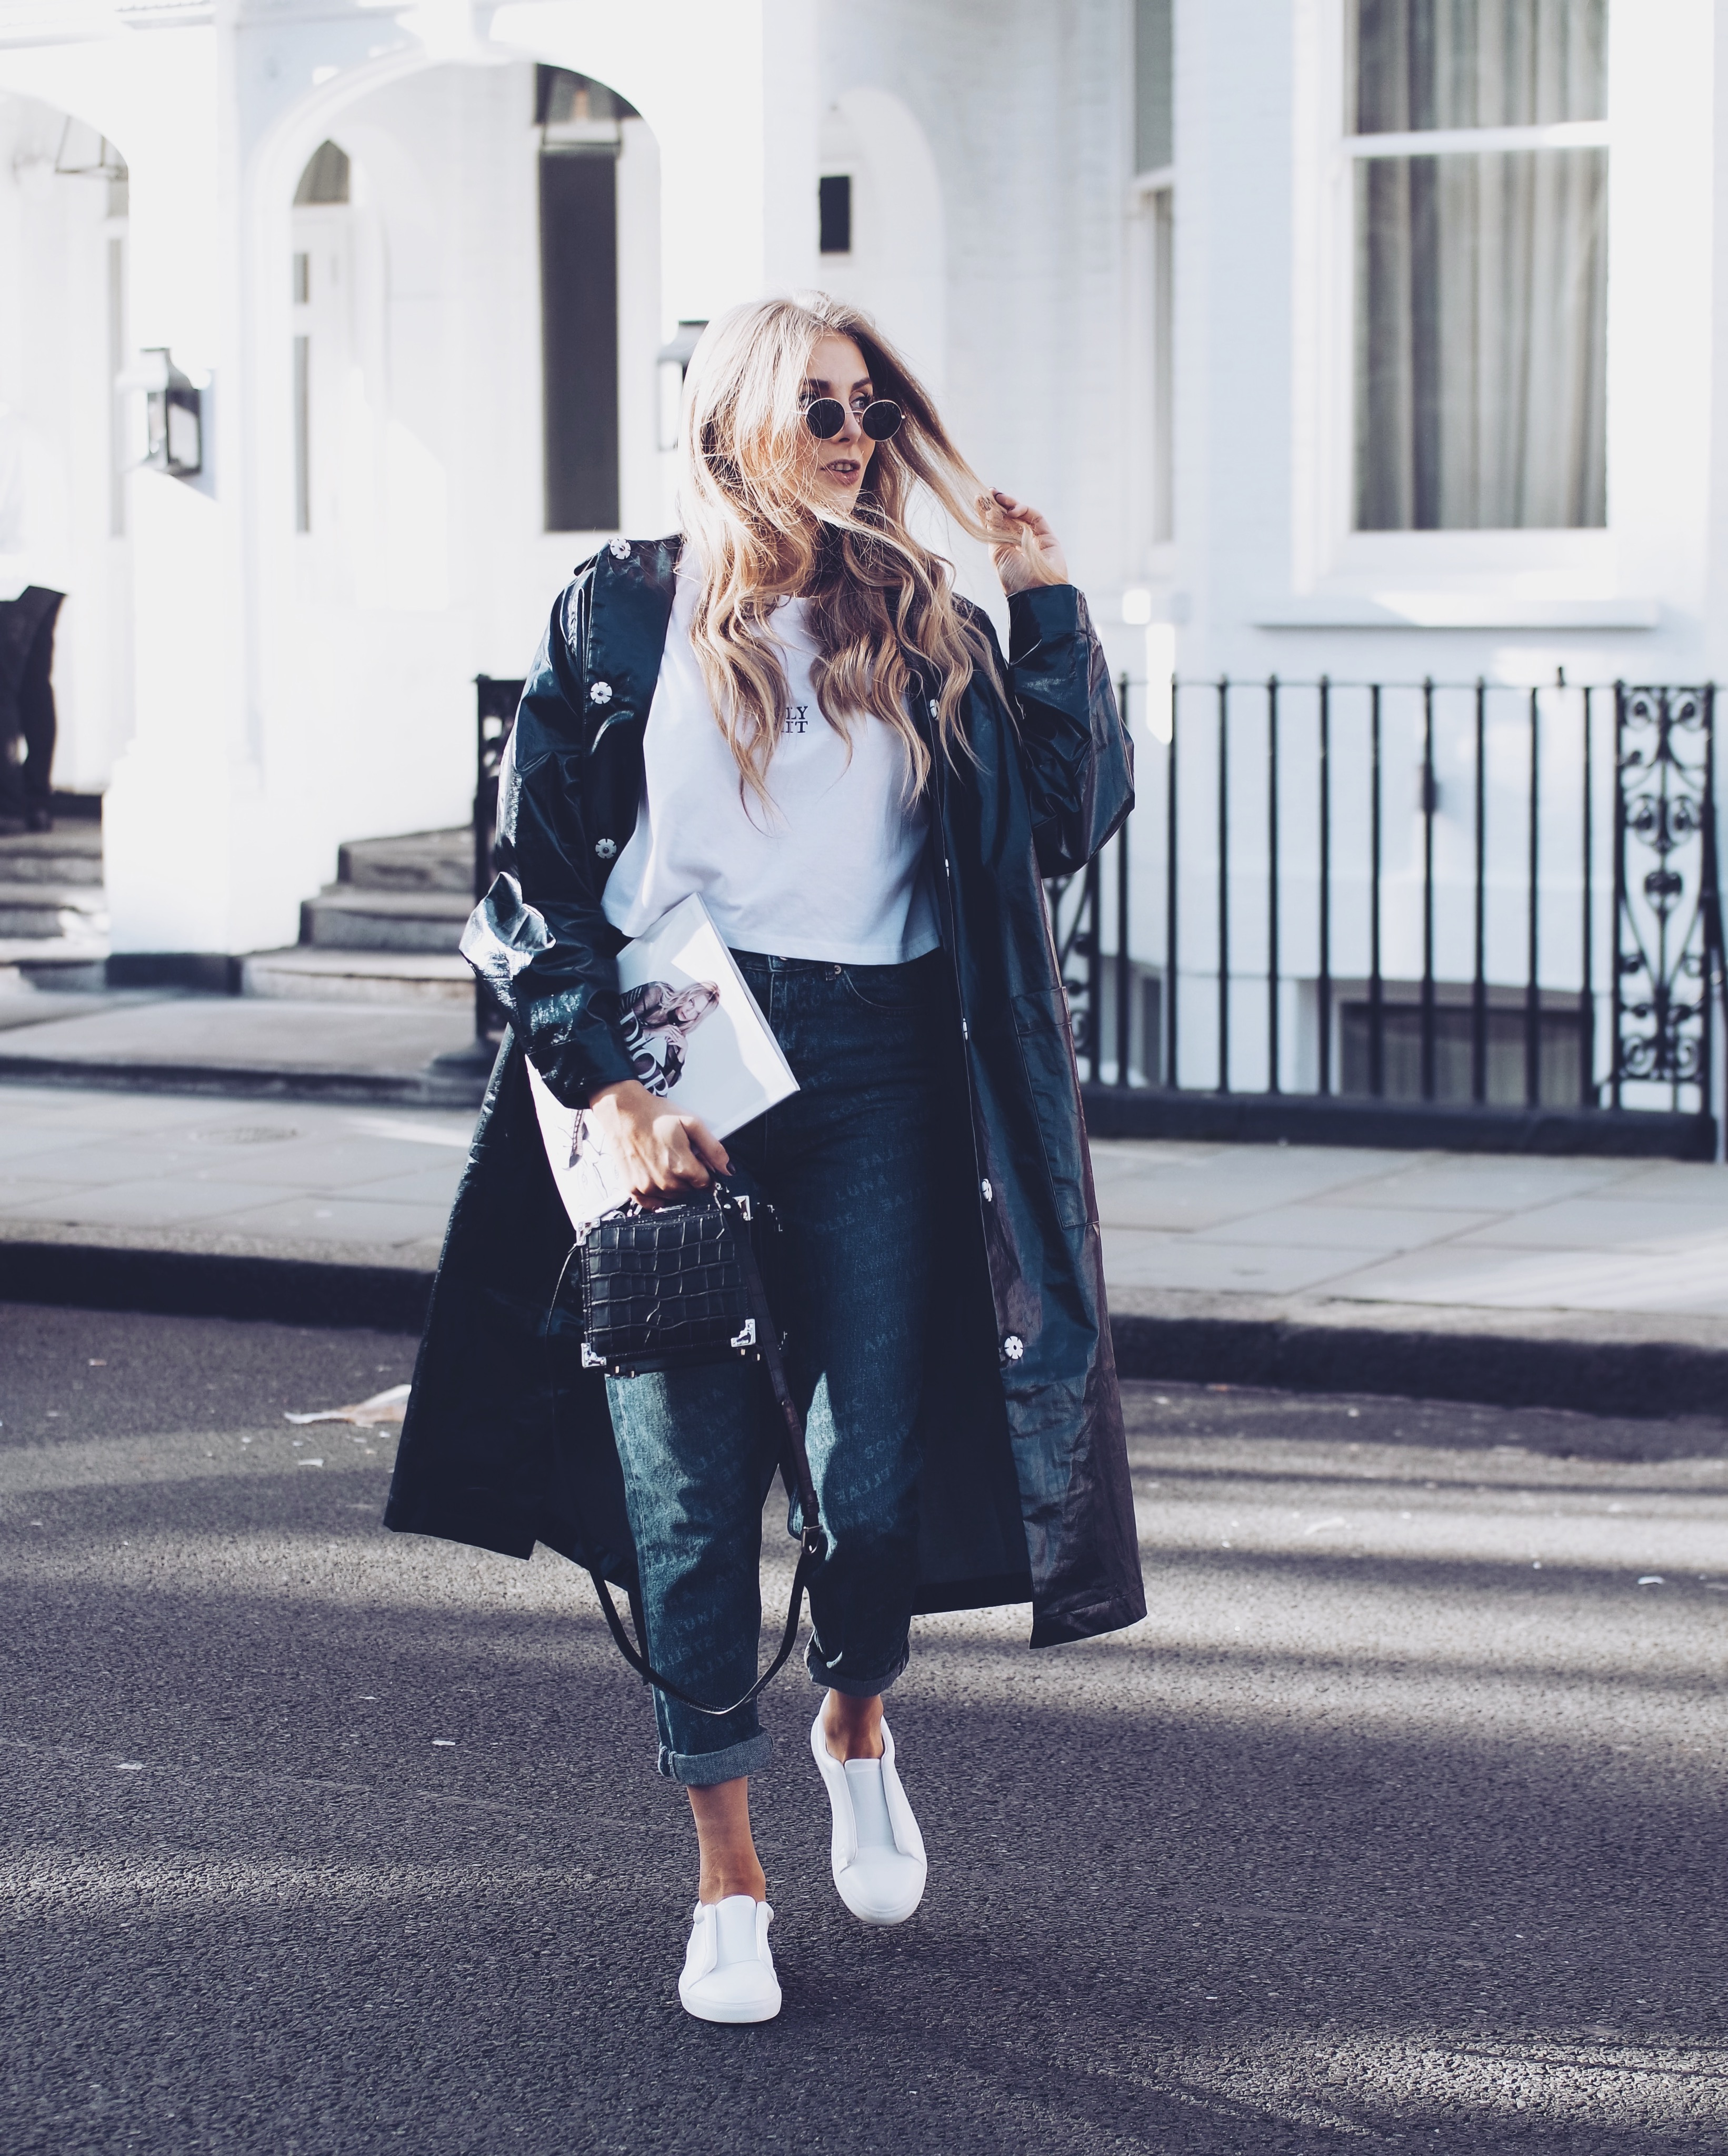 Lfw Street Style Blogger Style Love Style Mindfulness Fashion Personal Style Blog